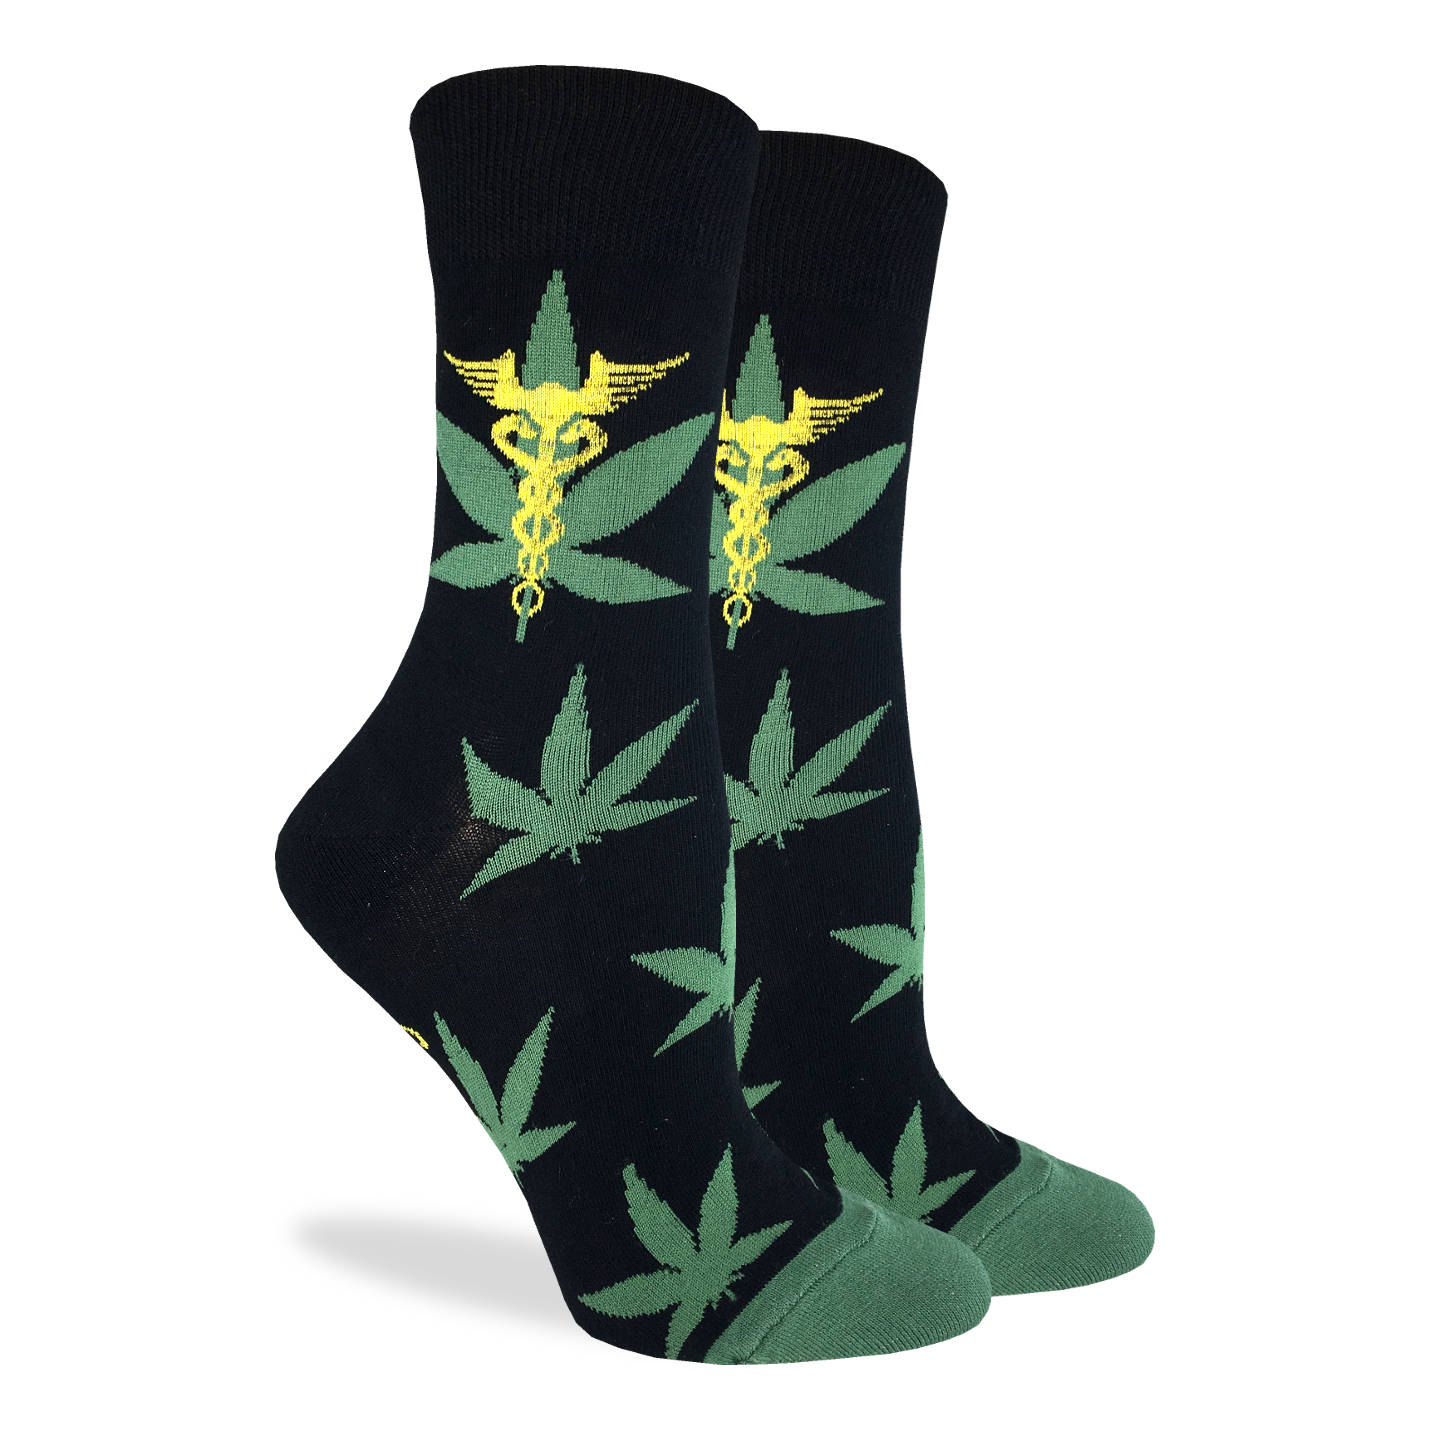 Women's Marijuana Leafs Socks - Good Luck Sock